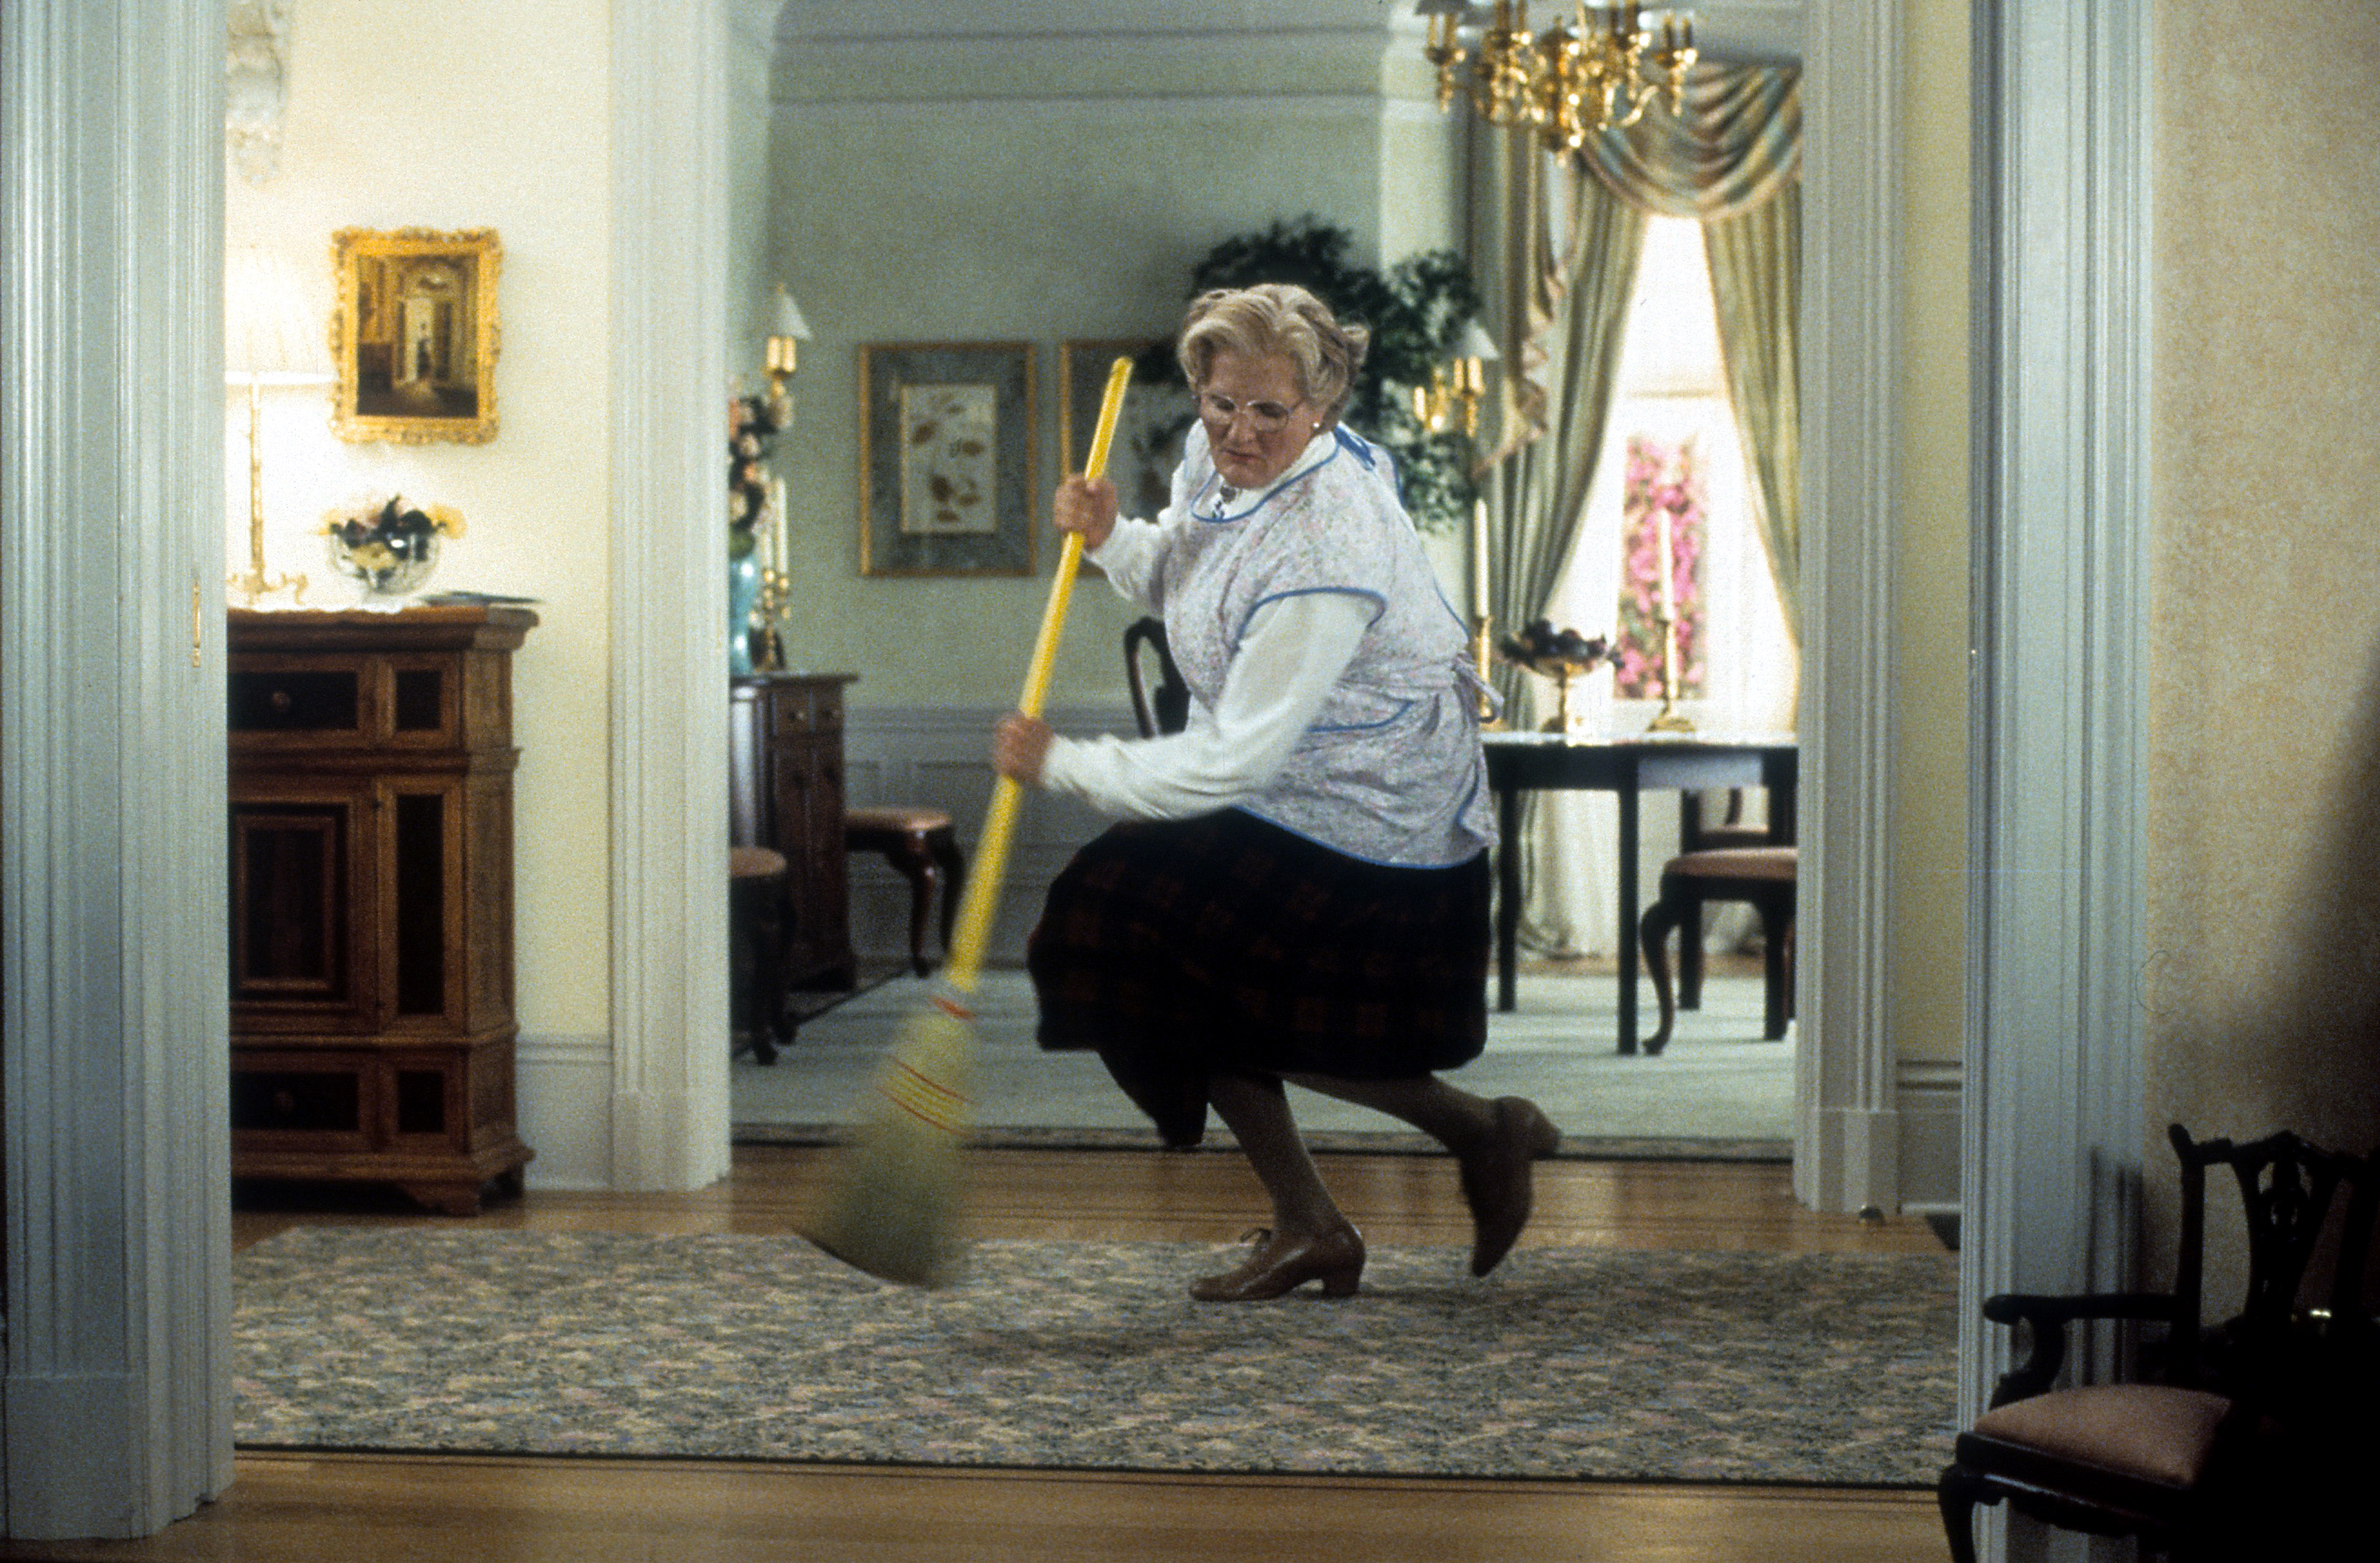 Robin Williams brooms in a scene from the film 'Mrs. Doubtfire', 1993.